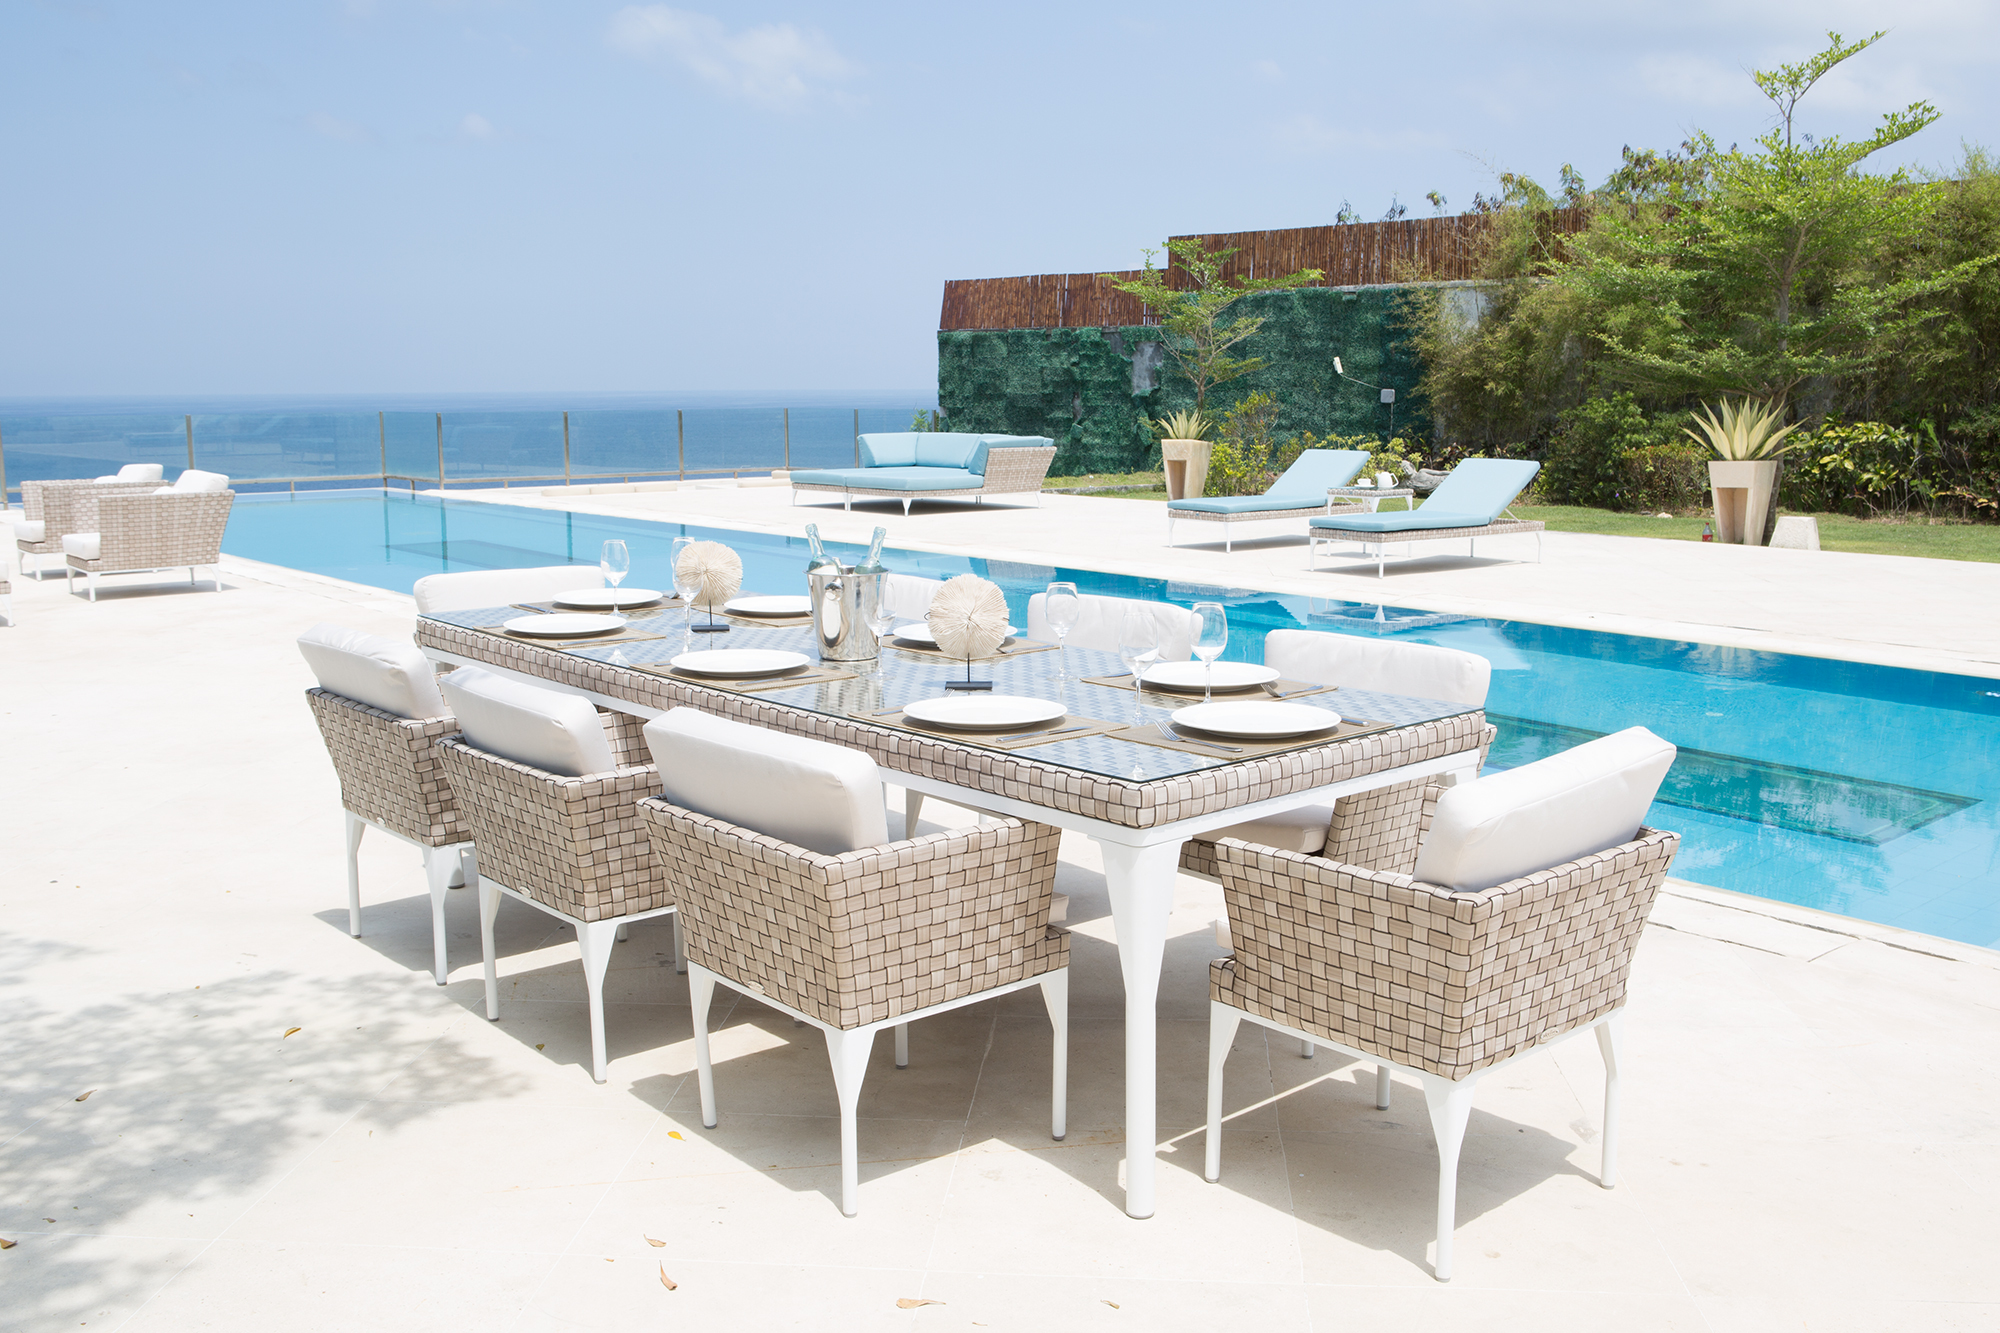 Brafta collection outdoor dining set furniture from spain for Outdoor furniture spain